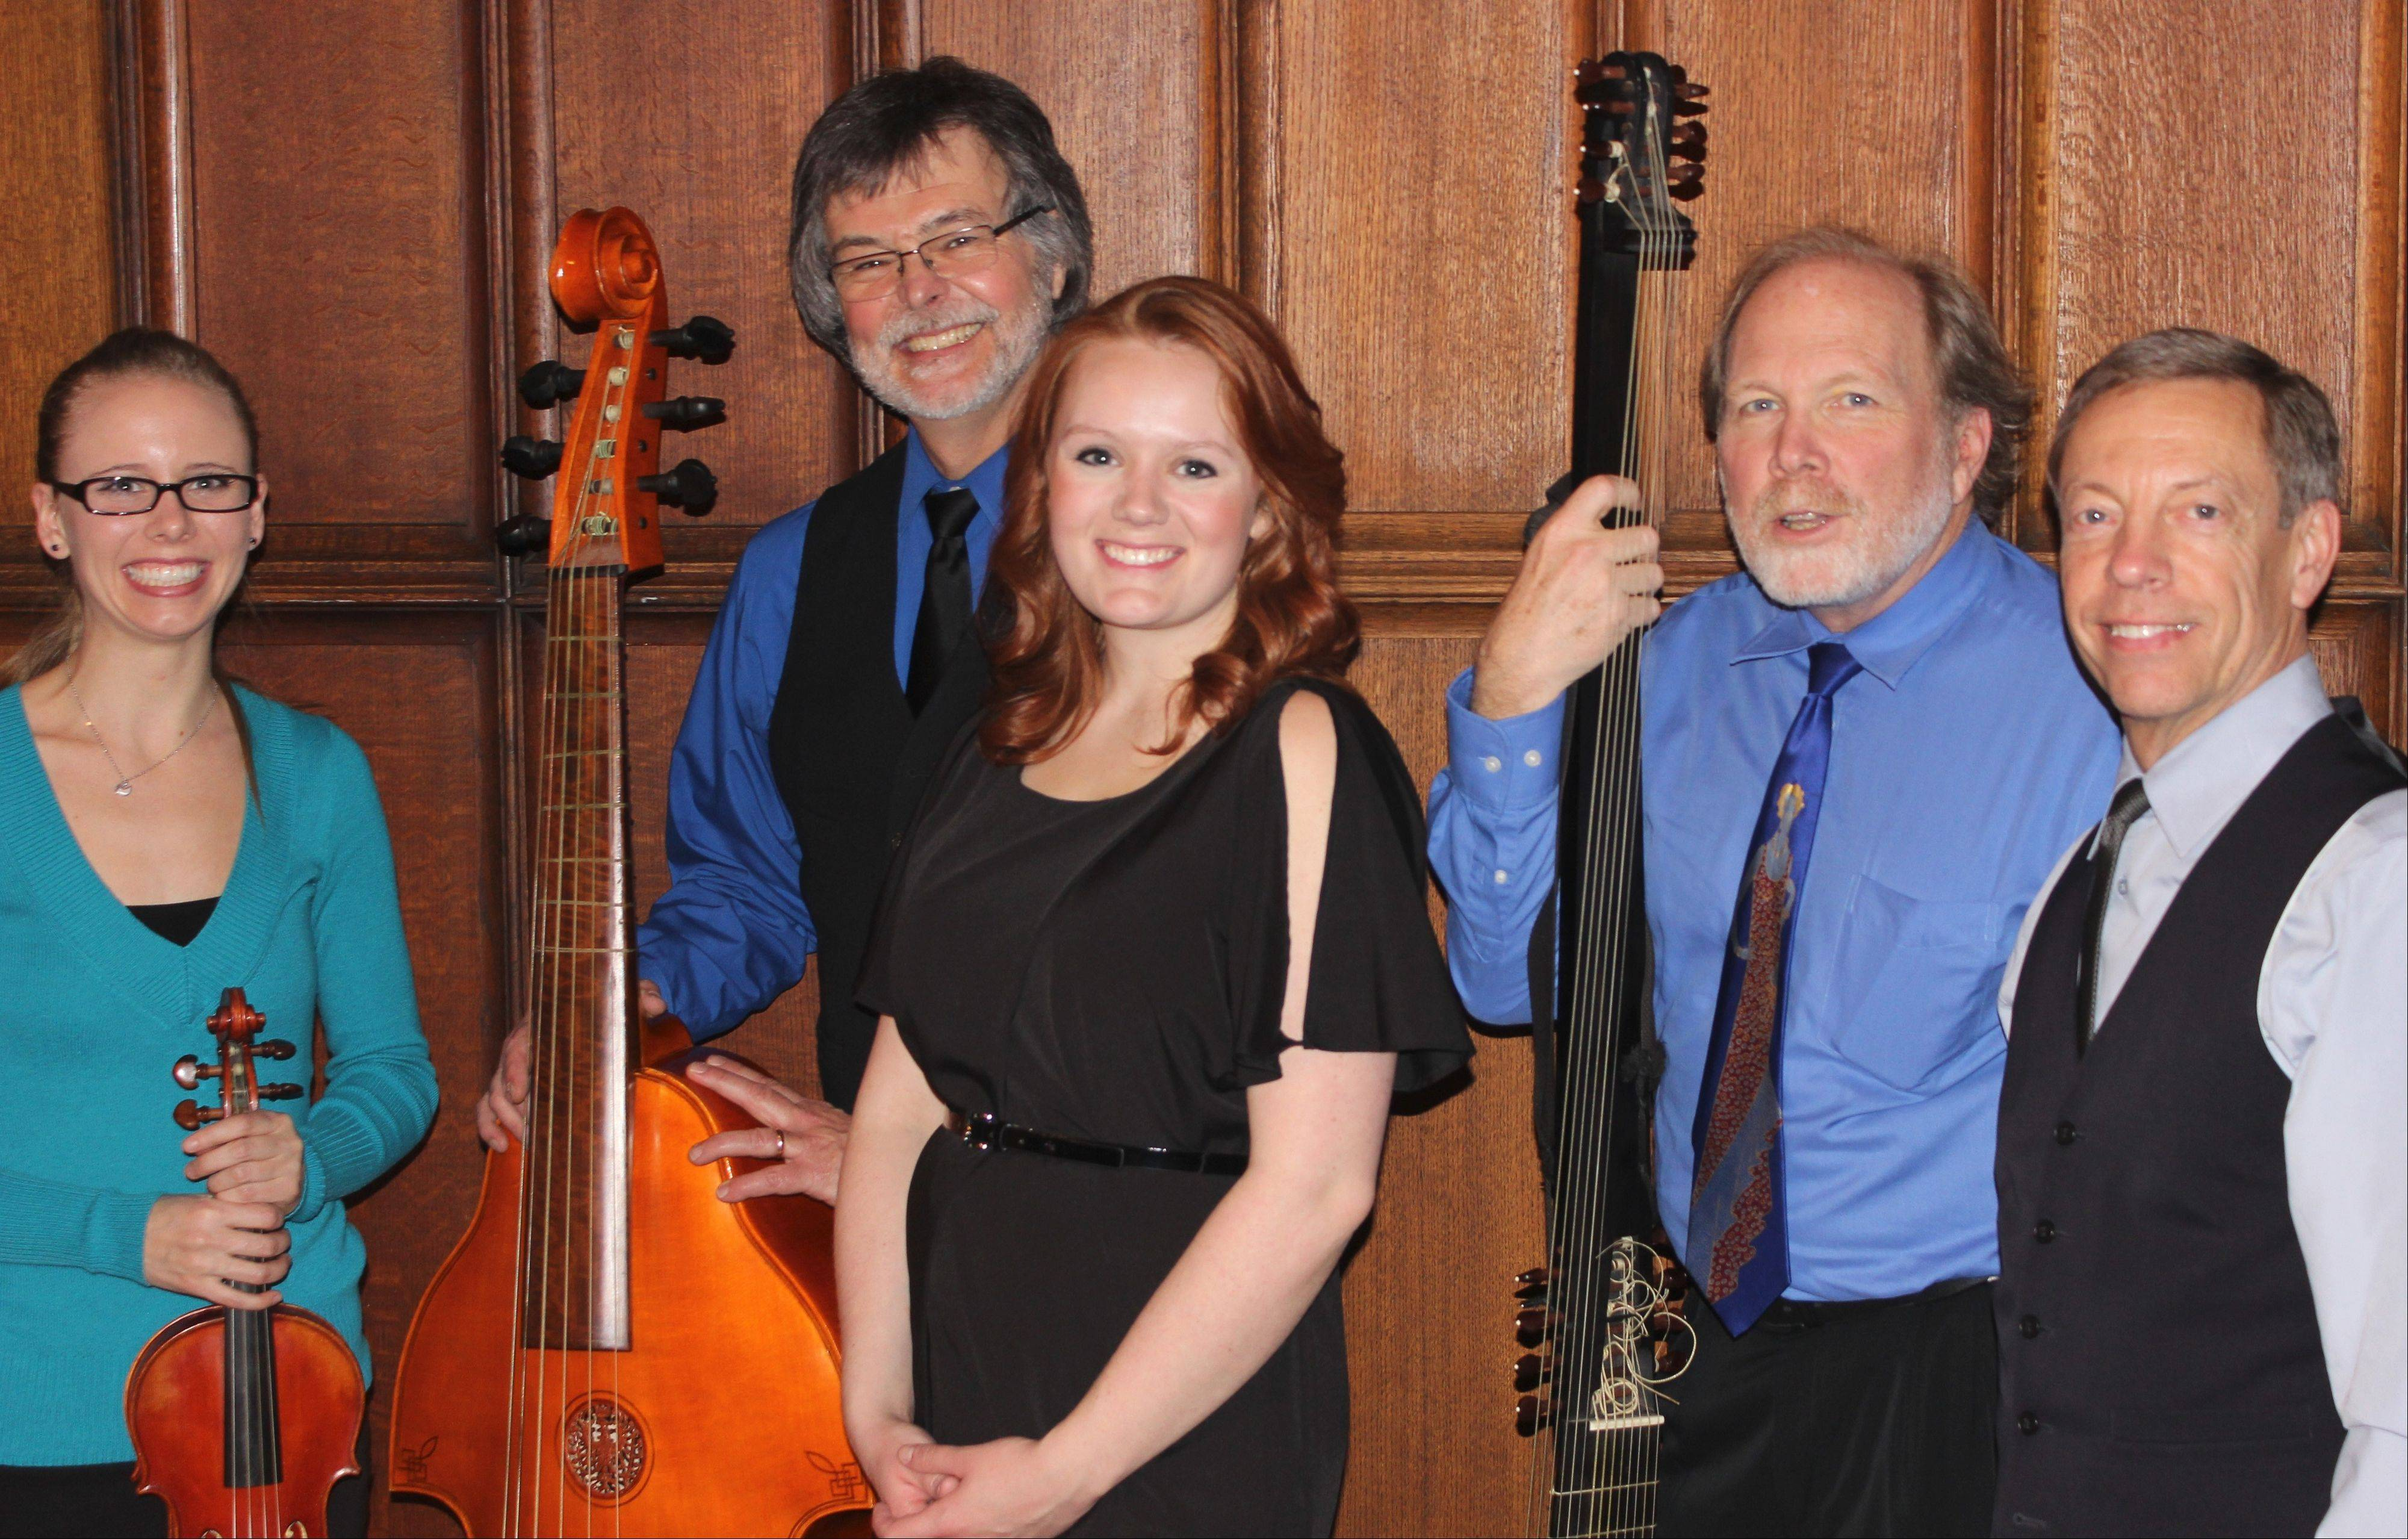 Such Sweete Melodie performs music of the 17th century at 4 p.m. Sunday, Feb. 9, at Byron Colby Barn in Grayslake.